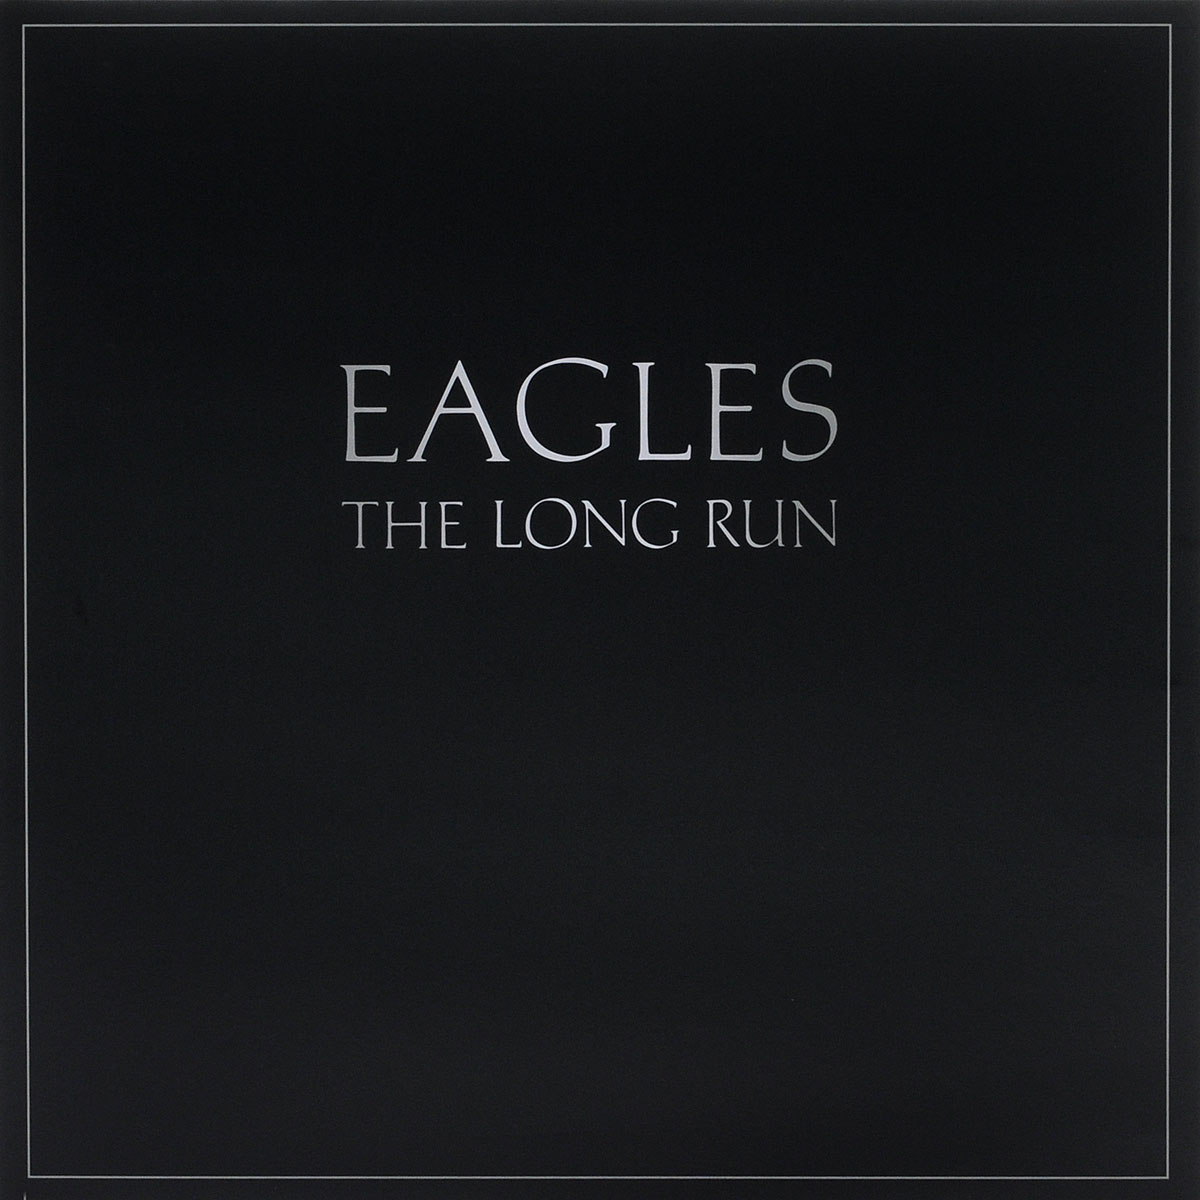 цена на The Eagles Eagles. The Long Run (LP)